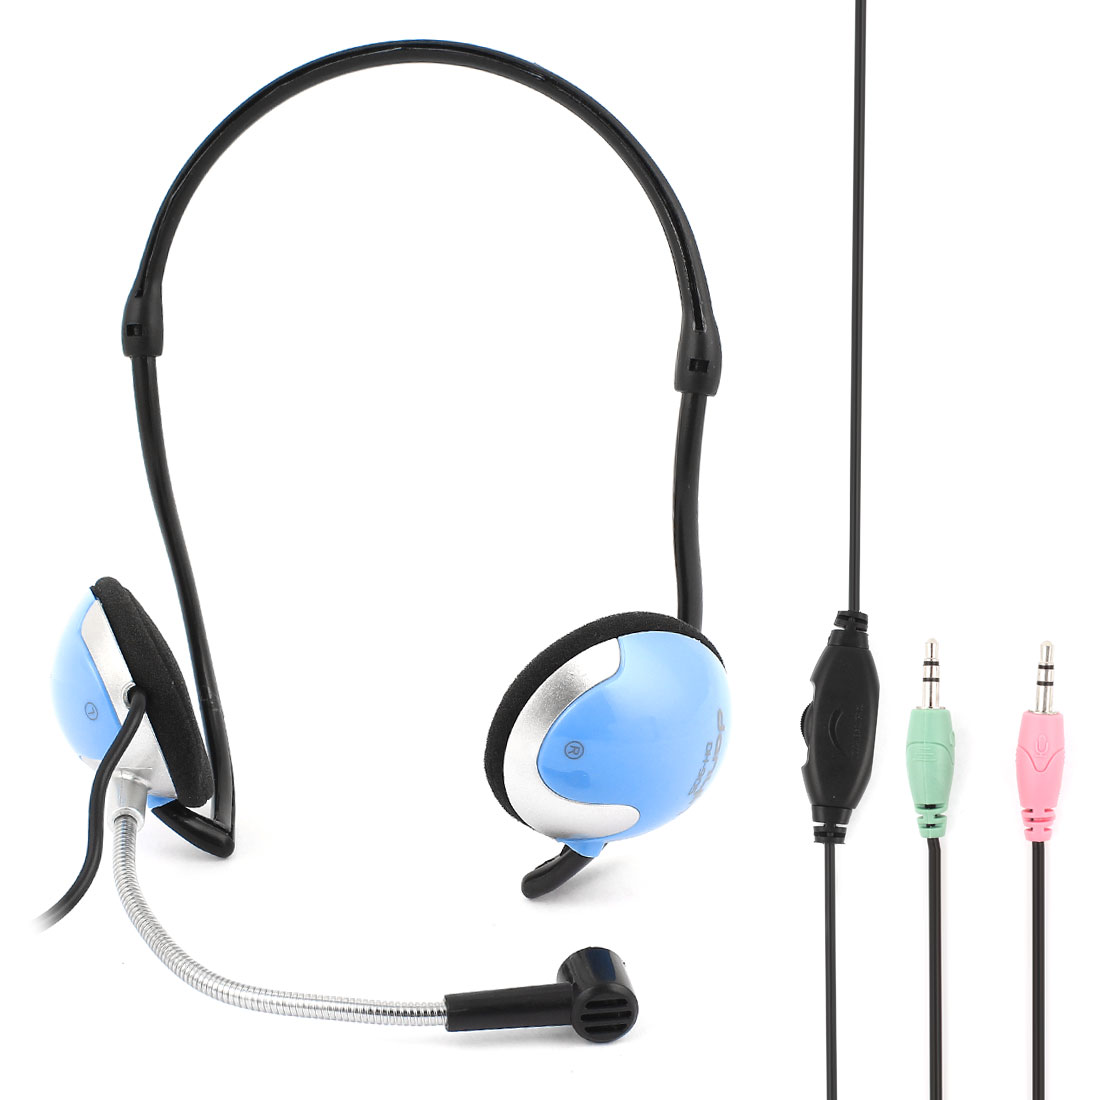 3.5mm Stereo Wired Headphone Headset Black Blue for Mobile Phone Notebook Tablet